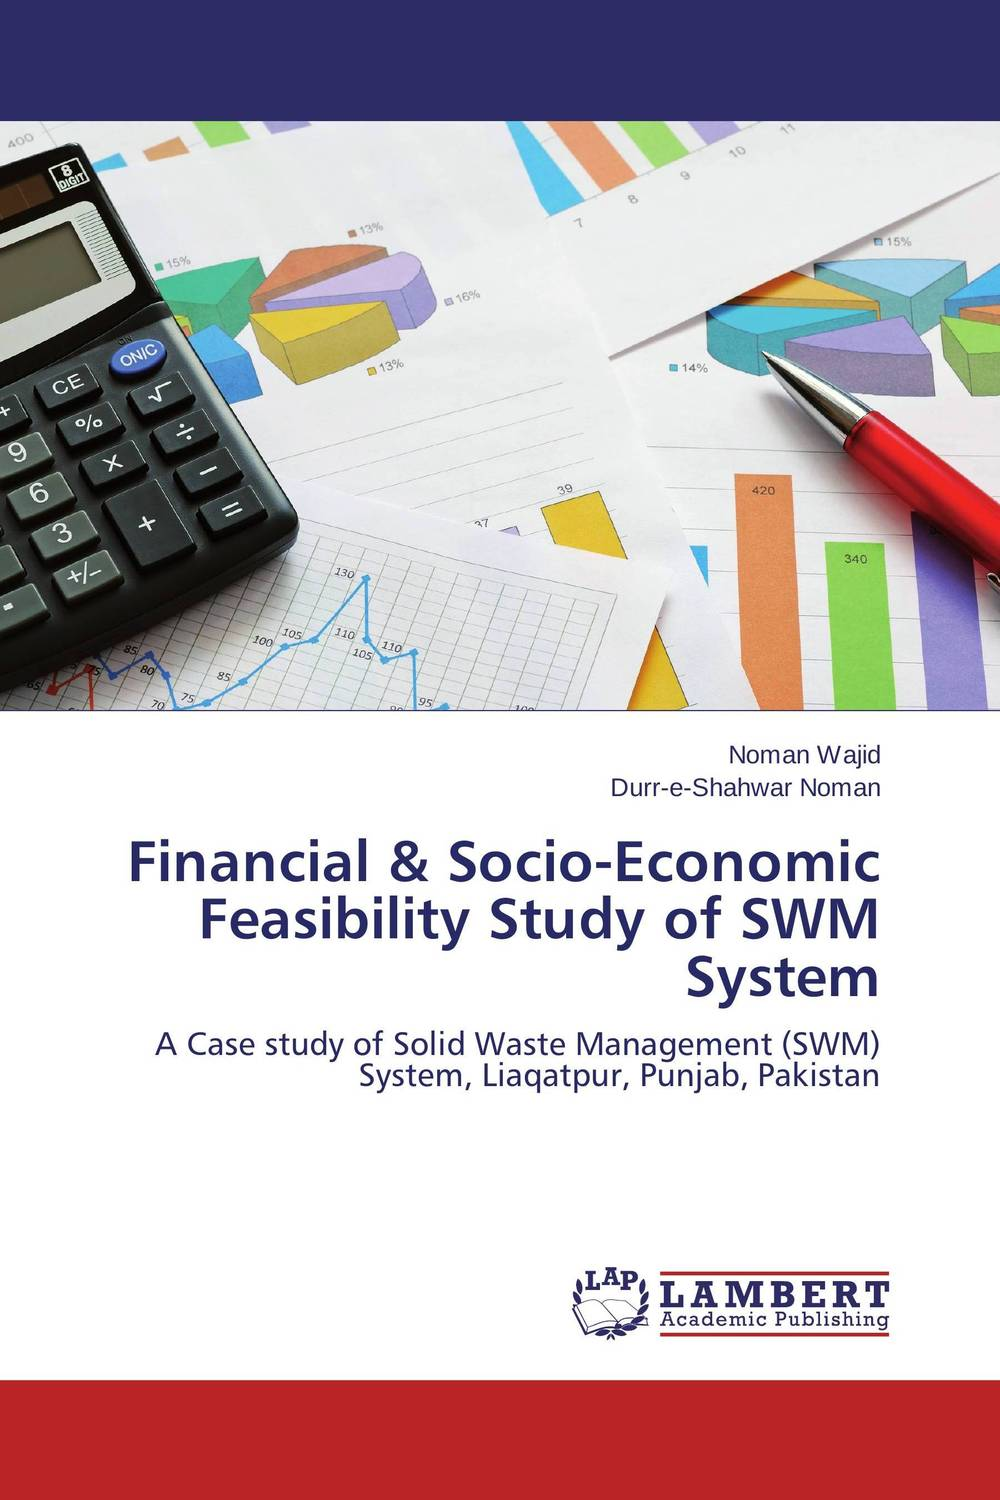 Financial & Socio-Economic Feasibility Study of SWM System economic methodology